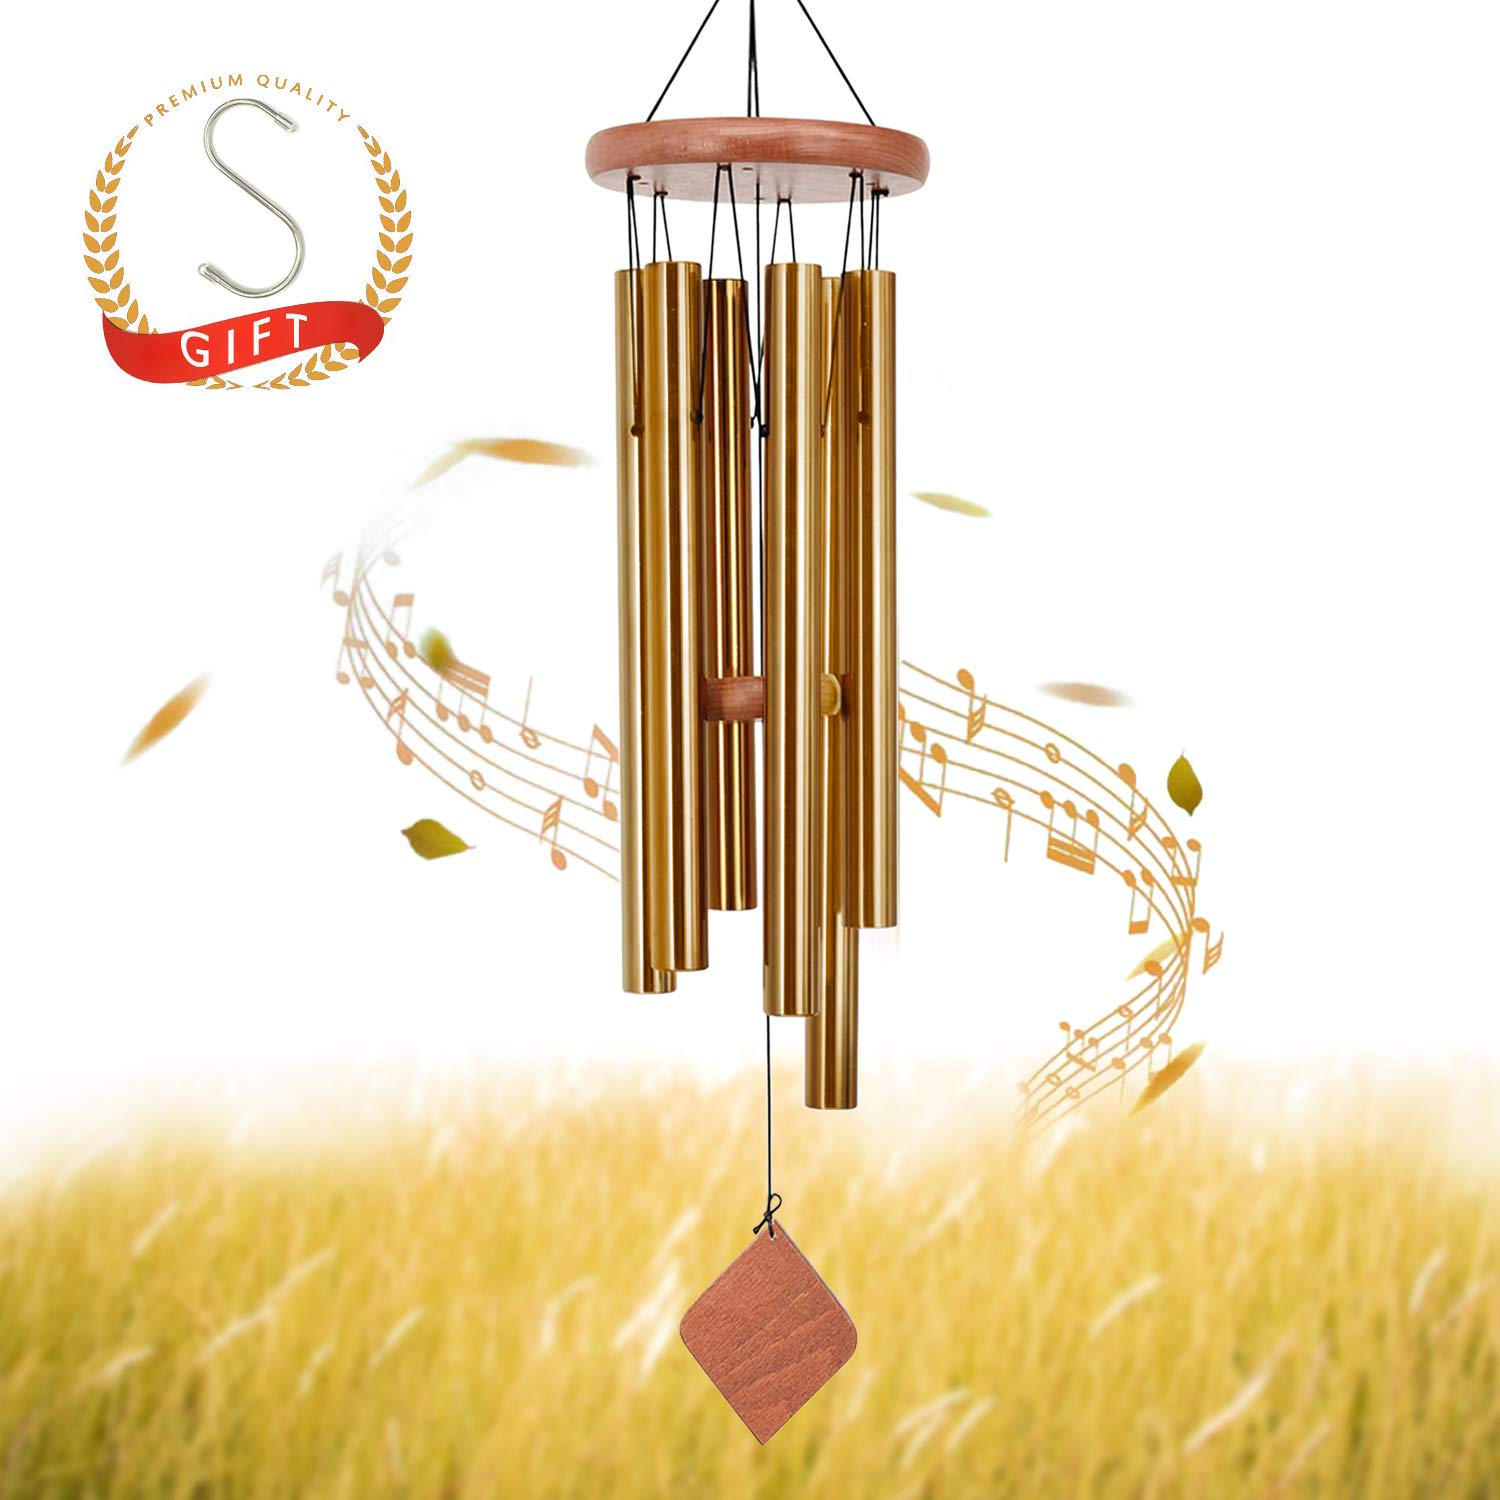 SuninYo Outdoor,30'' Amazing Grace Wind Chimes with S Hook, Golden